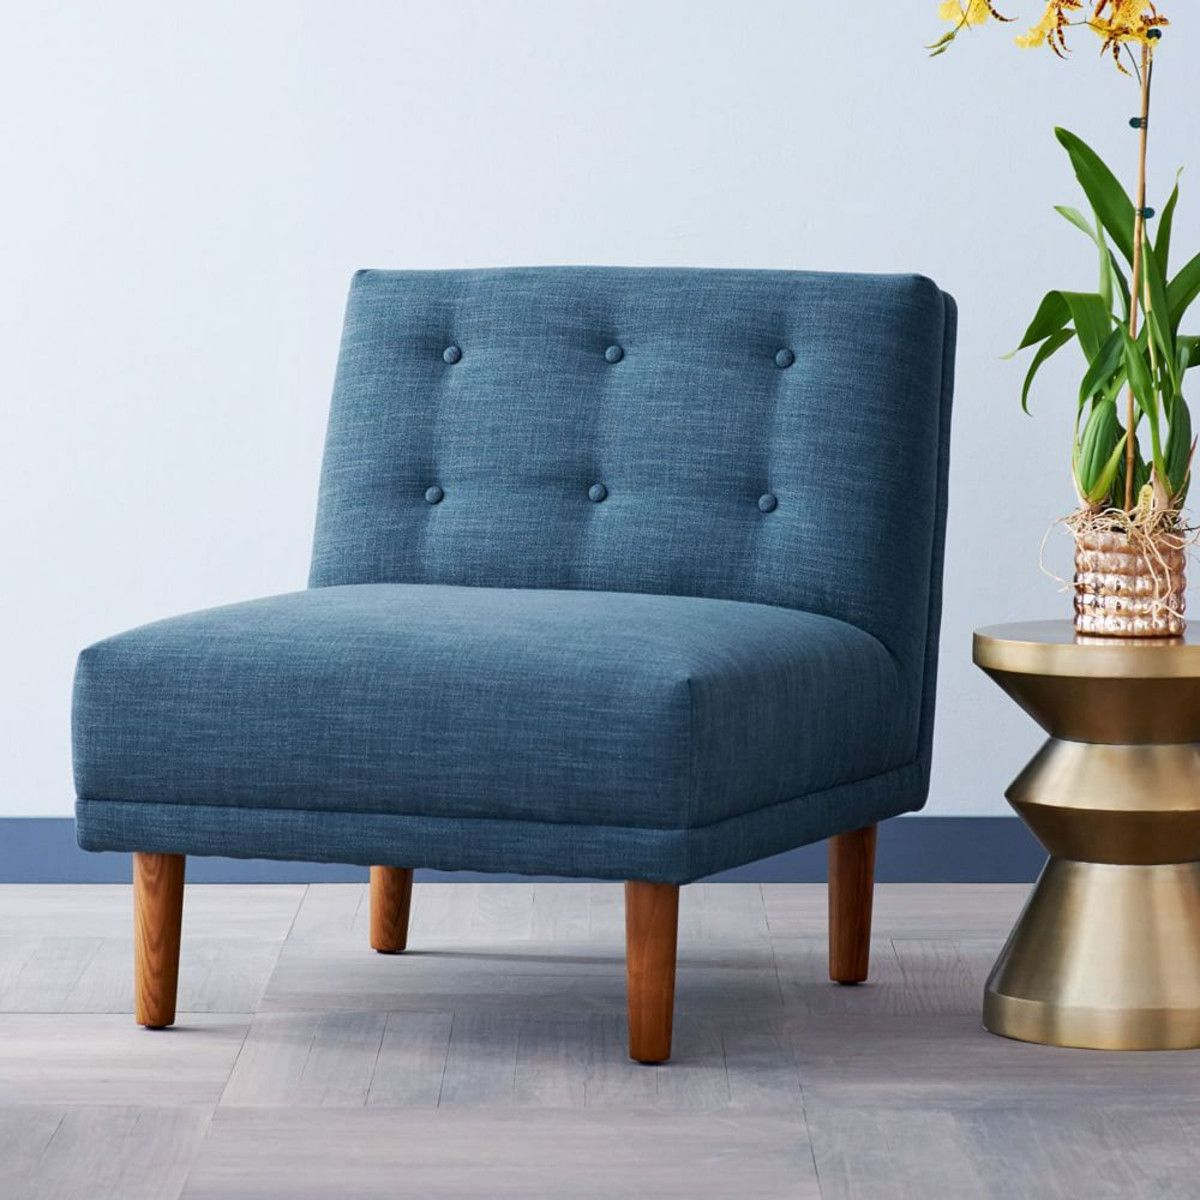 who makes west elm furniture. rounded retro armless chair west elm australia who makes furniture